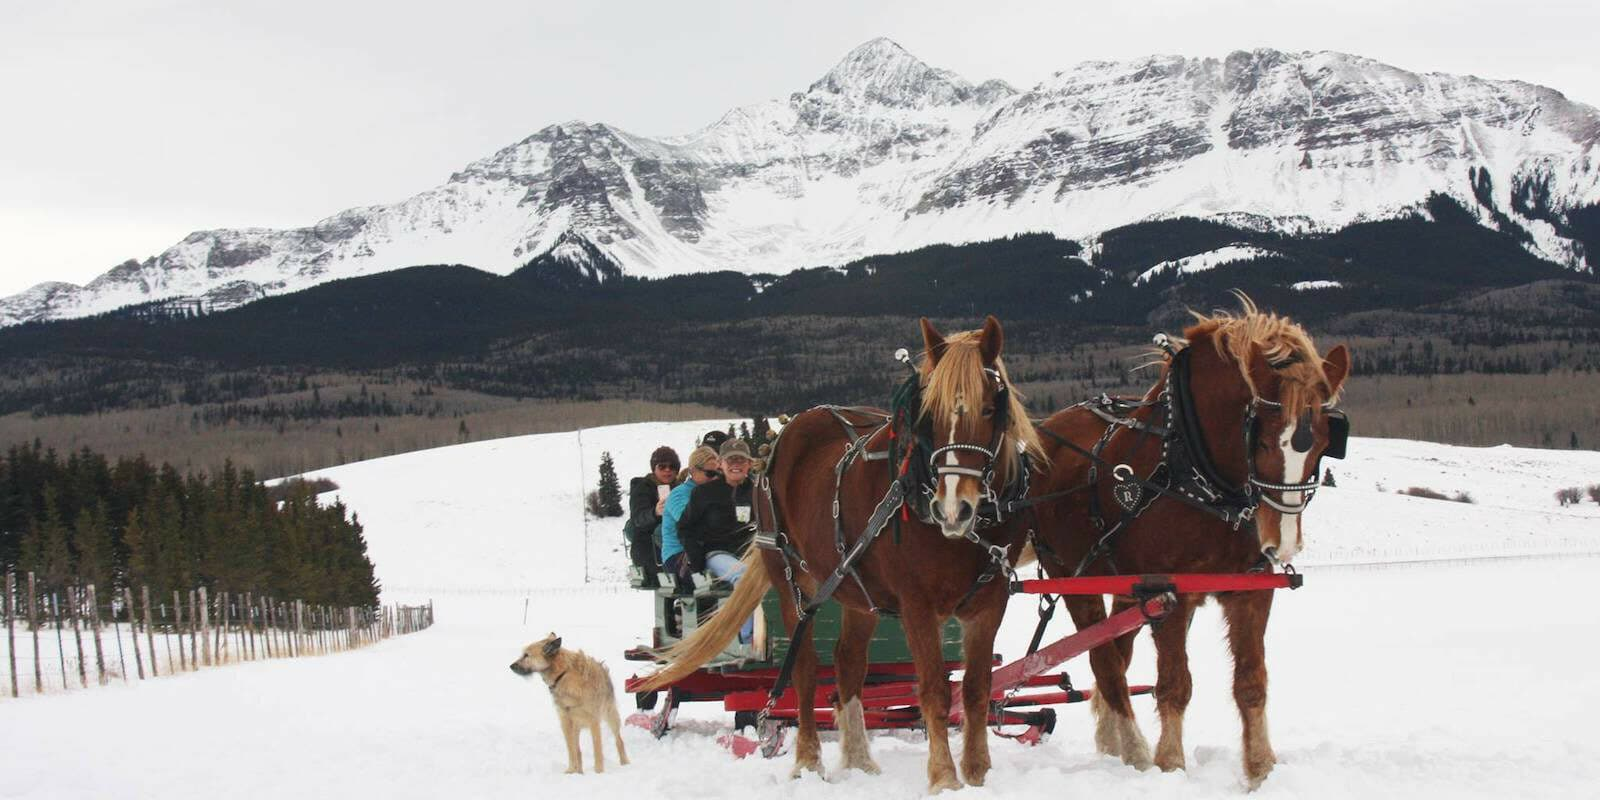 Image of a Sleigh at the Old Fashioned Christmas in Telluride, Colorado